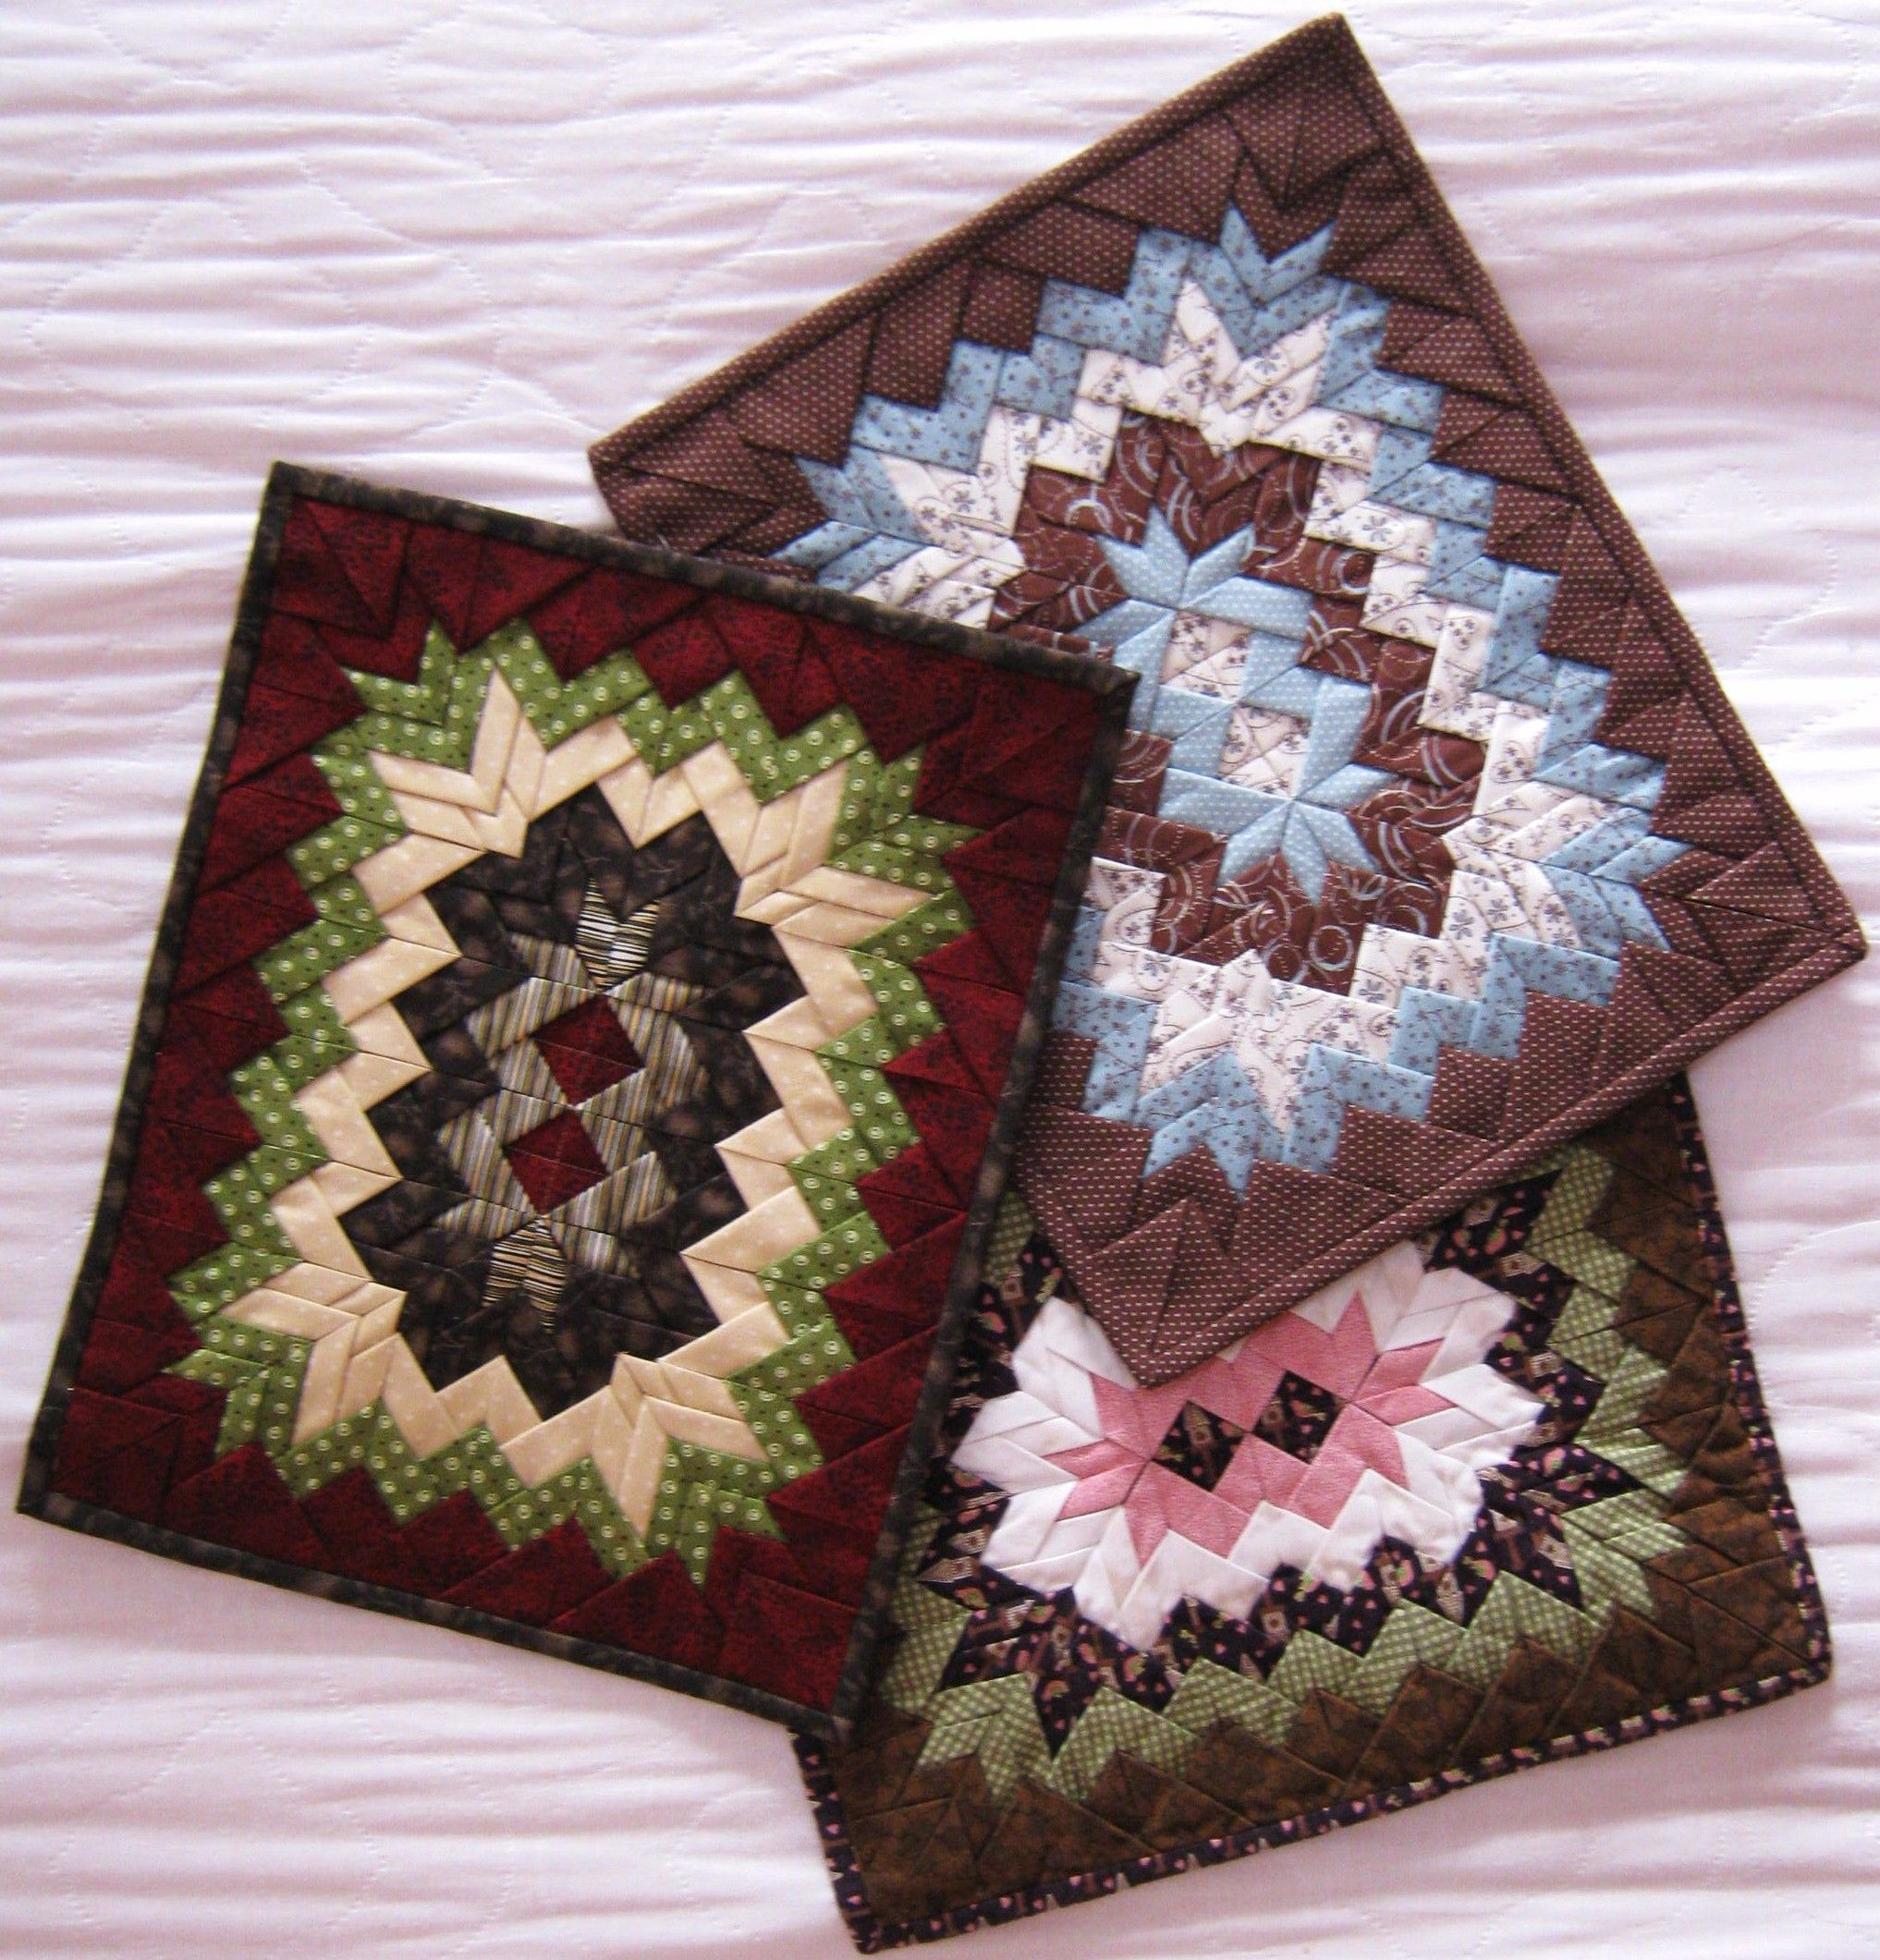 Quilted Fan Placemats Patterns Take Four Placemats Pattern Quilt Patterns Epatterns Quilted Placemat Patterns Placemats Patterns Folded Fabric Ornaments